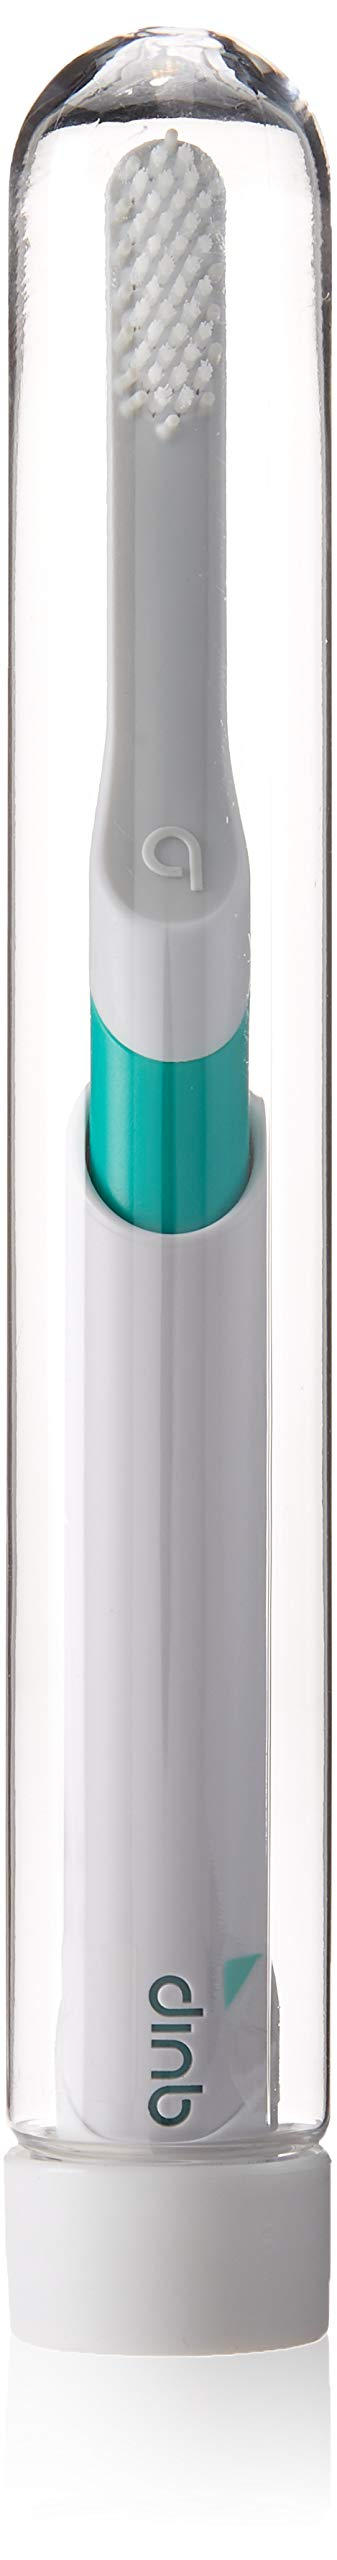 Quip Electric Toothbrush - Green Color - Electric Brush and Travel Cover Mount - Frustration Free Packaging by Quip